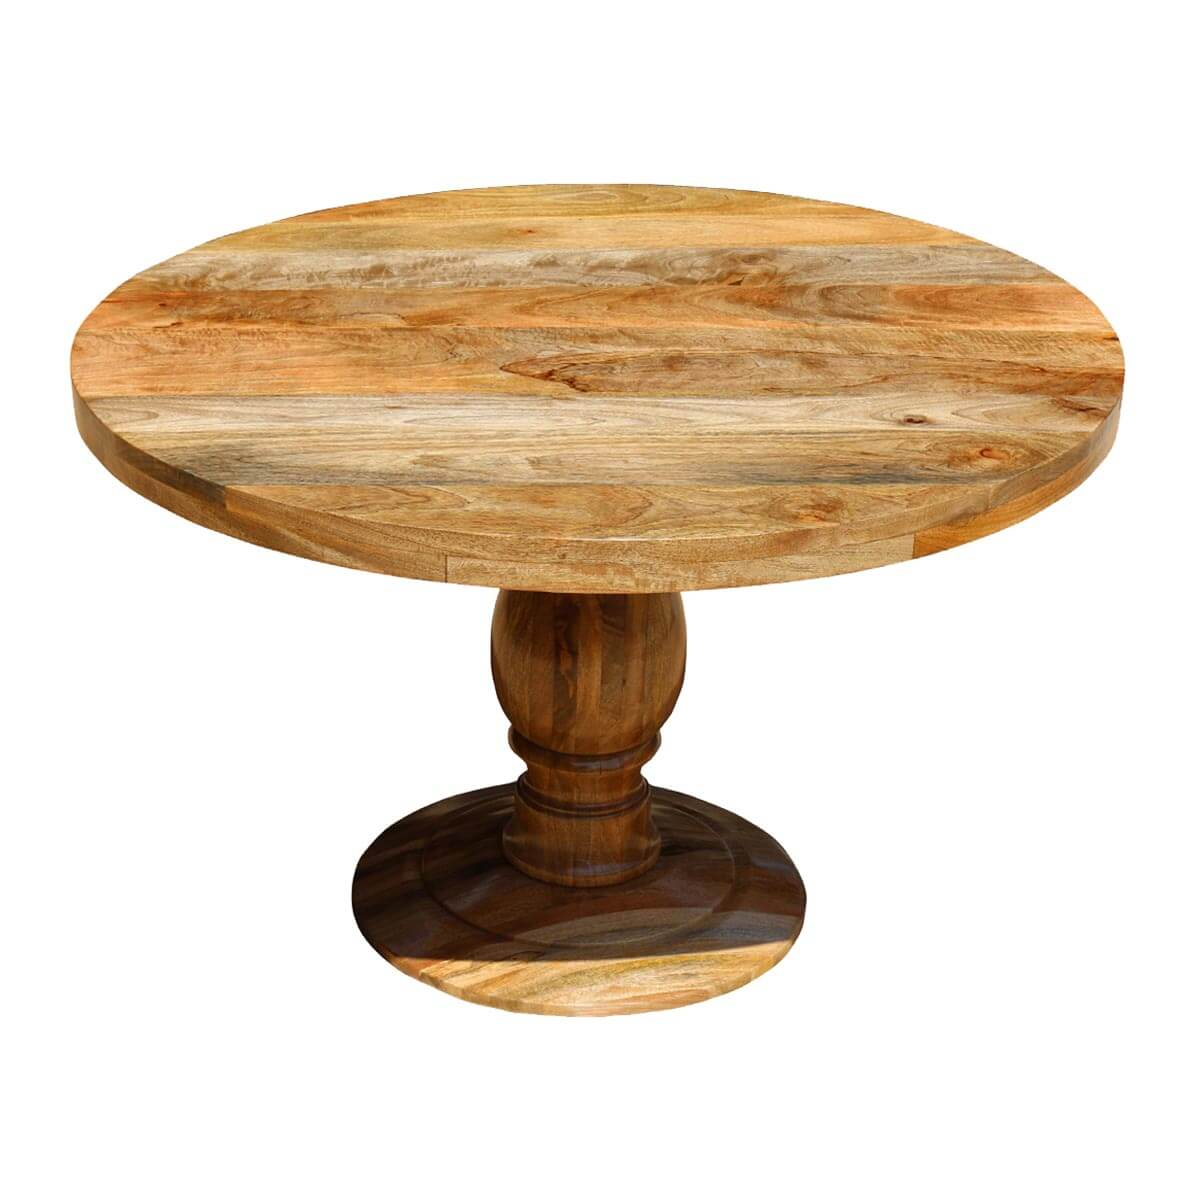 Rustic mango wood 48 round pedestal dining table for Pedestal dining table